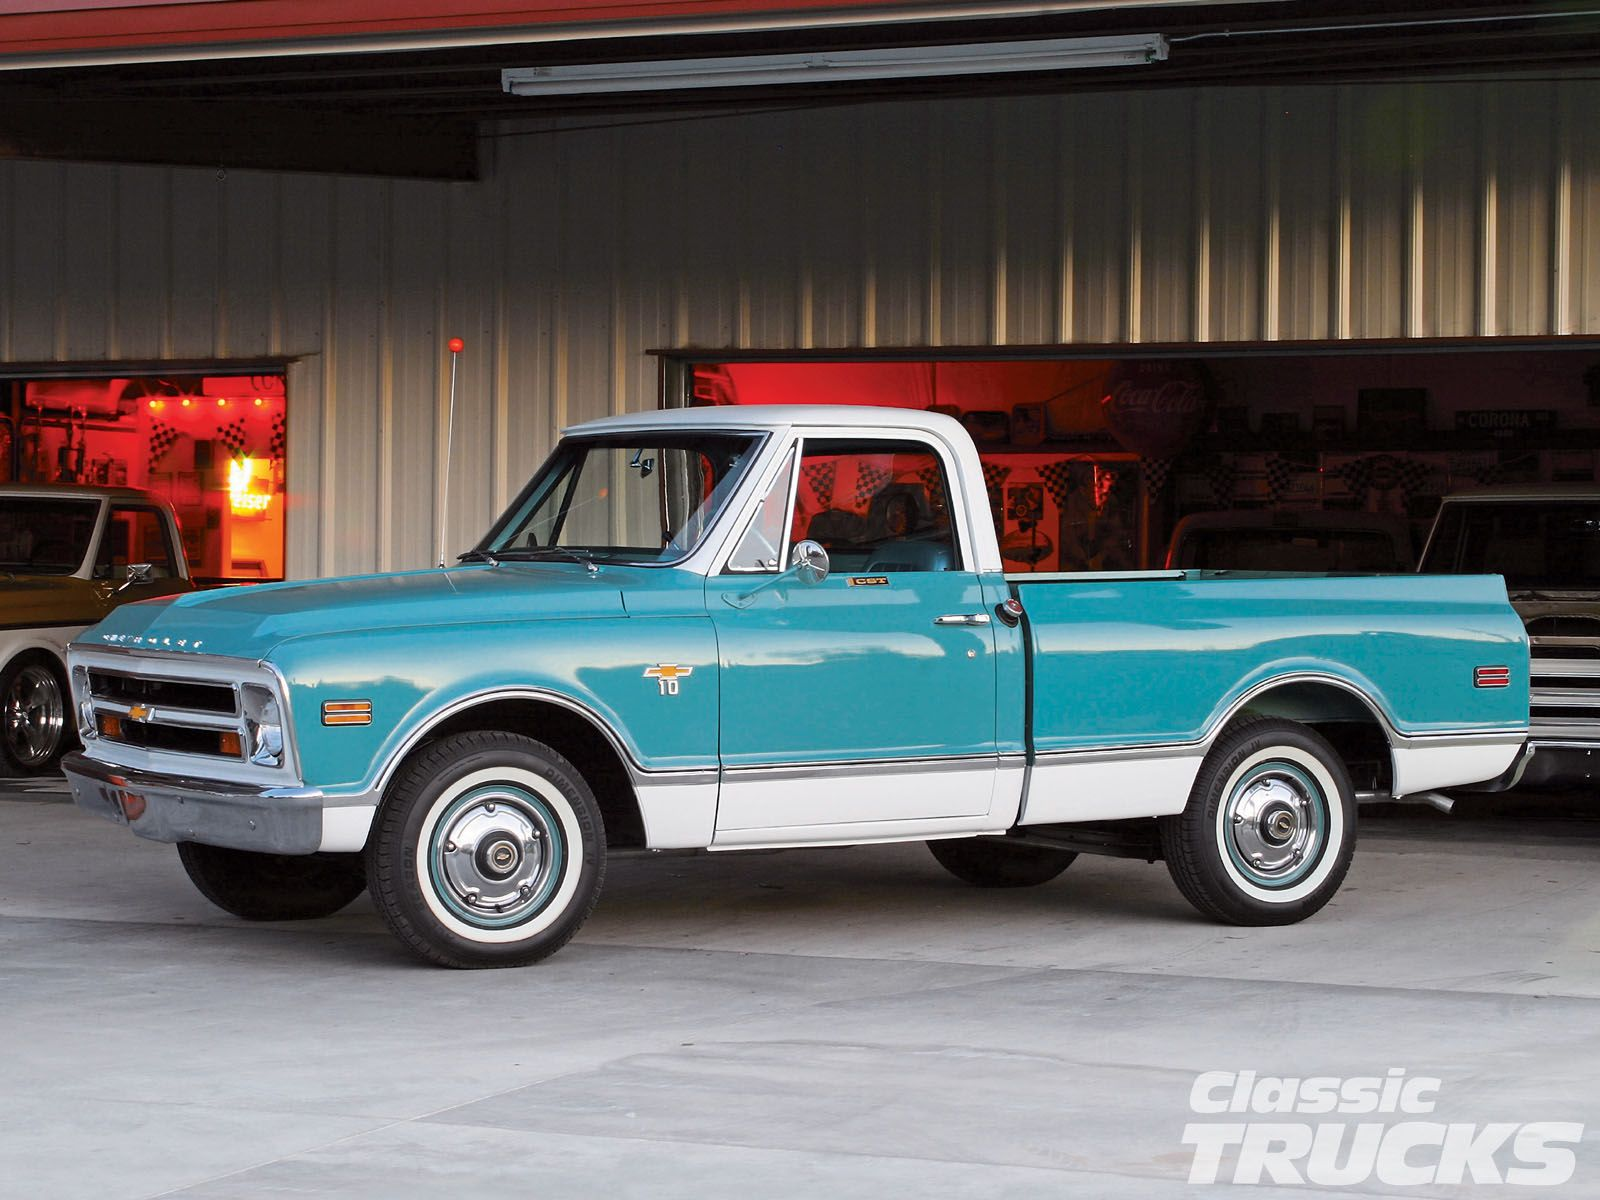 1968 Chevy C10 - Just a Great Color! I just might have to restore my ...